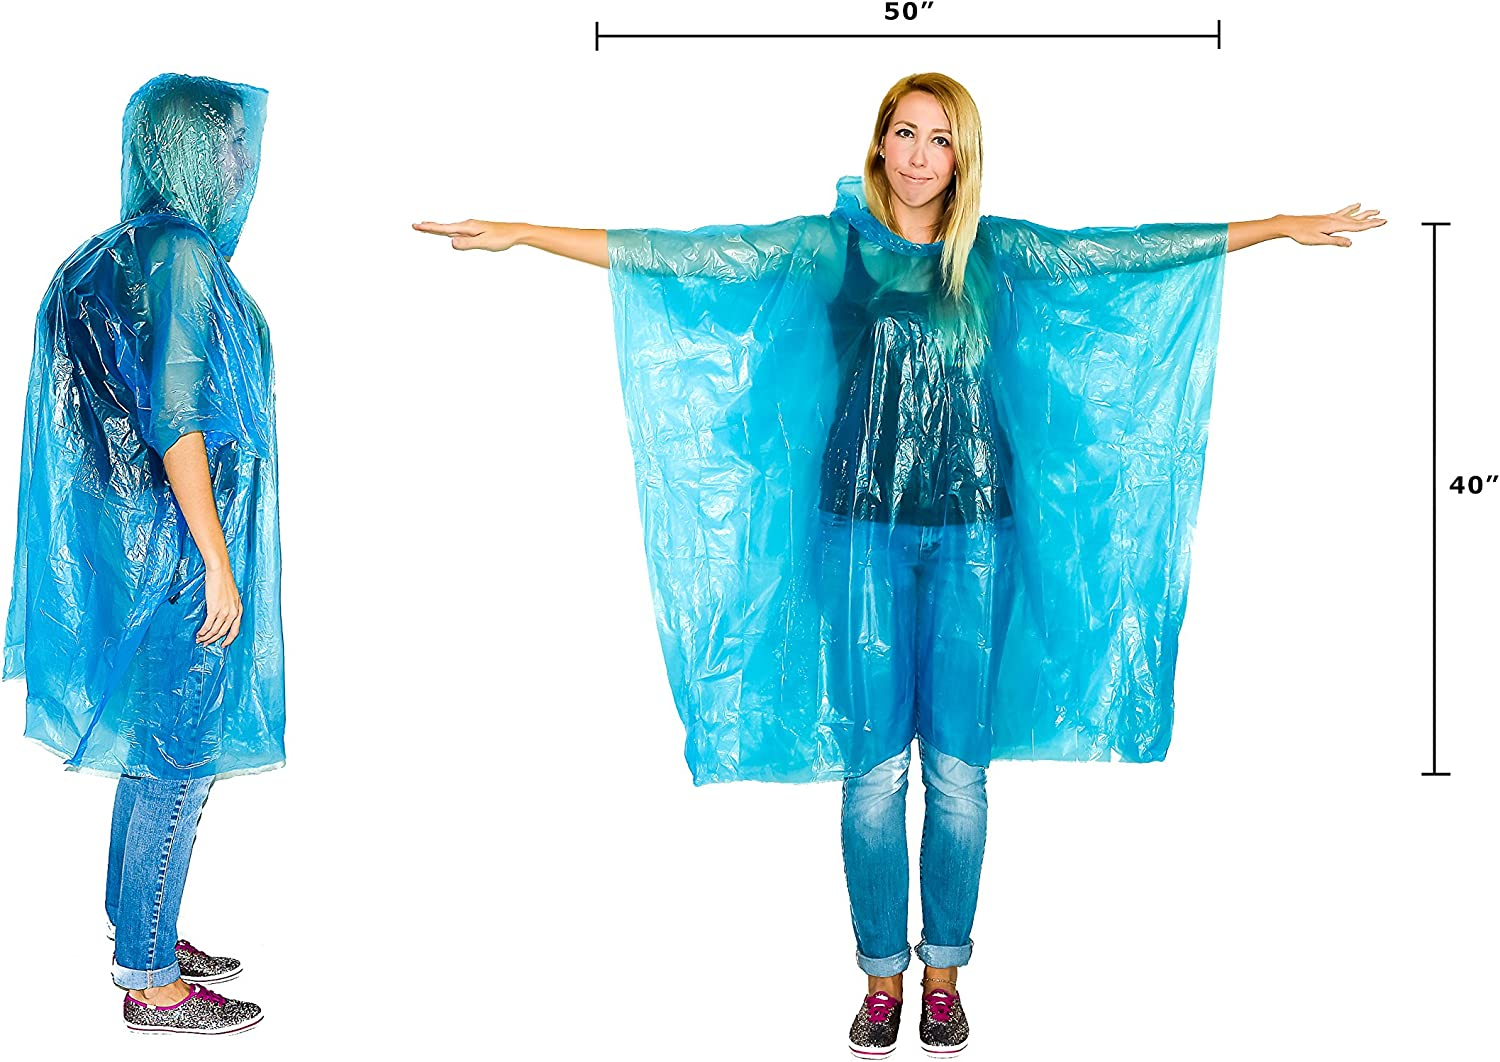 Disposable Emergency Ponchos Perfect for Camping Hiking /& Travel Lingito 20 Pack of Family Rain Ponchos